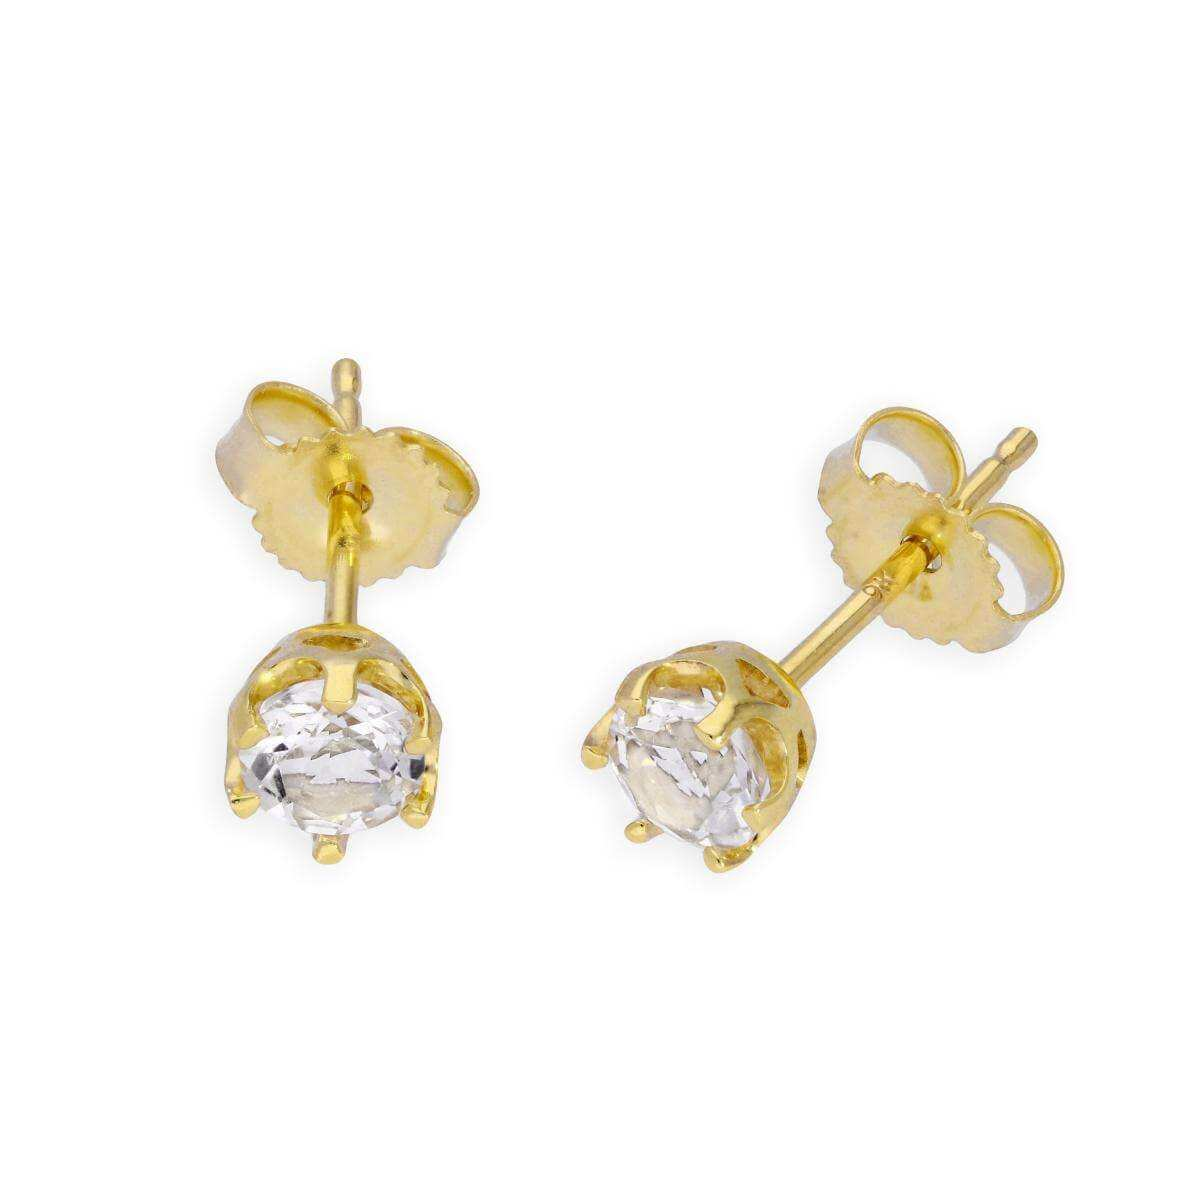 9ct Gold & White Topaz Genuine Gemstone Stud Earrings